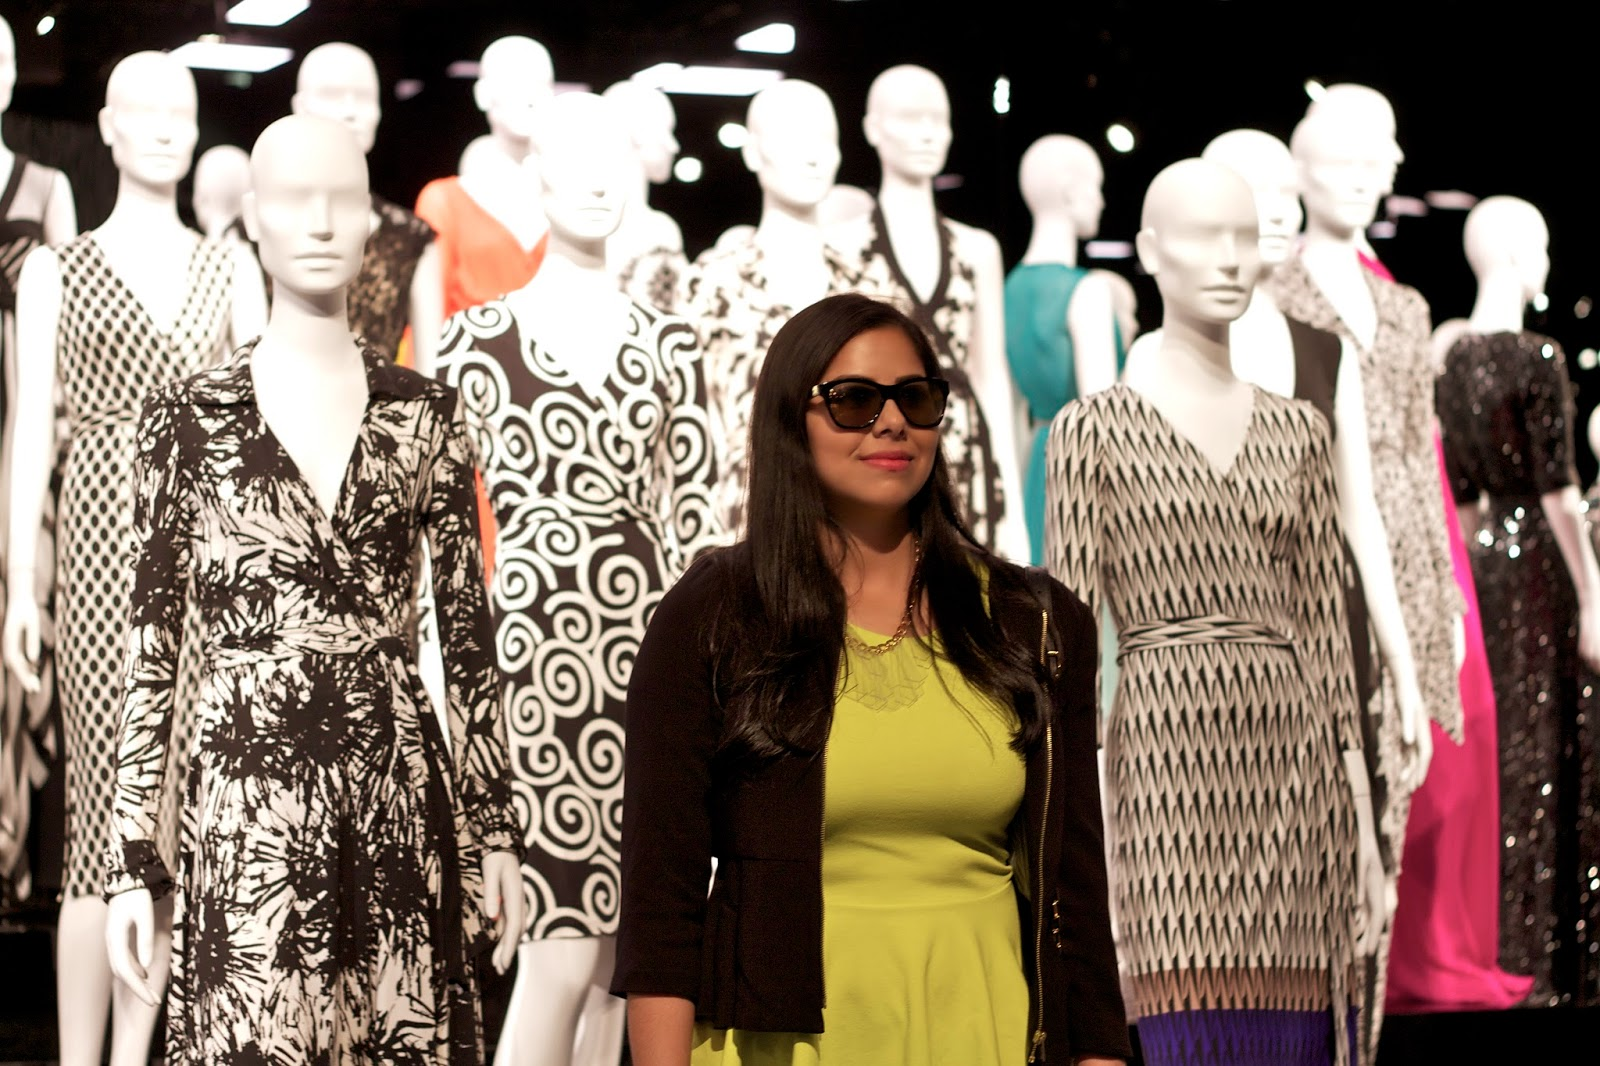 DVF Mannequins as background, San Diego blogger